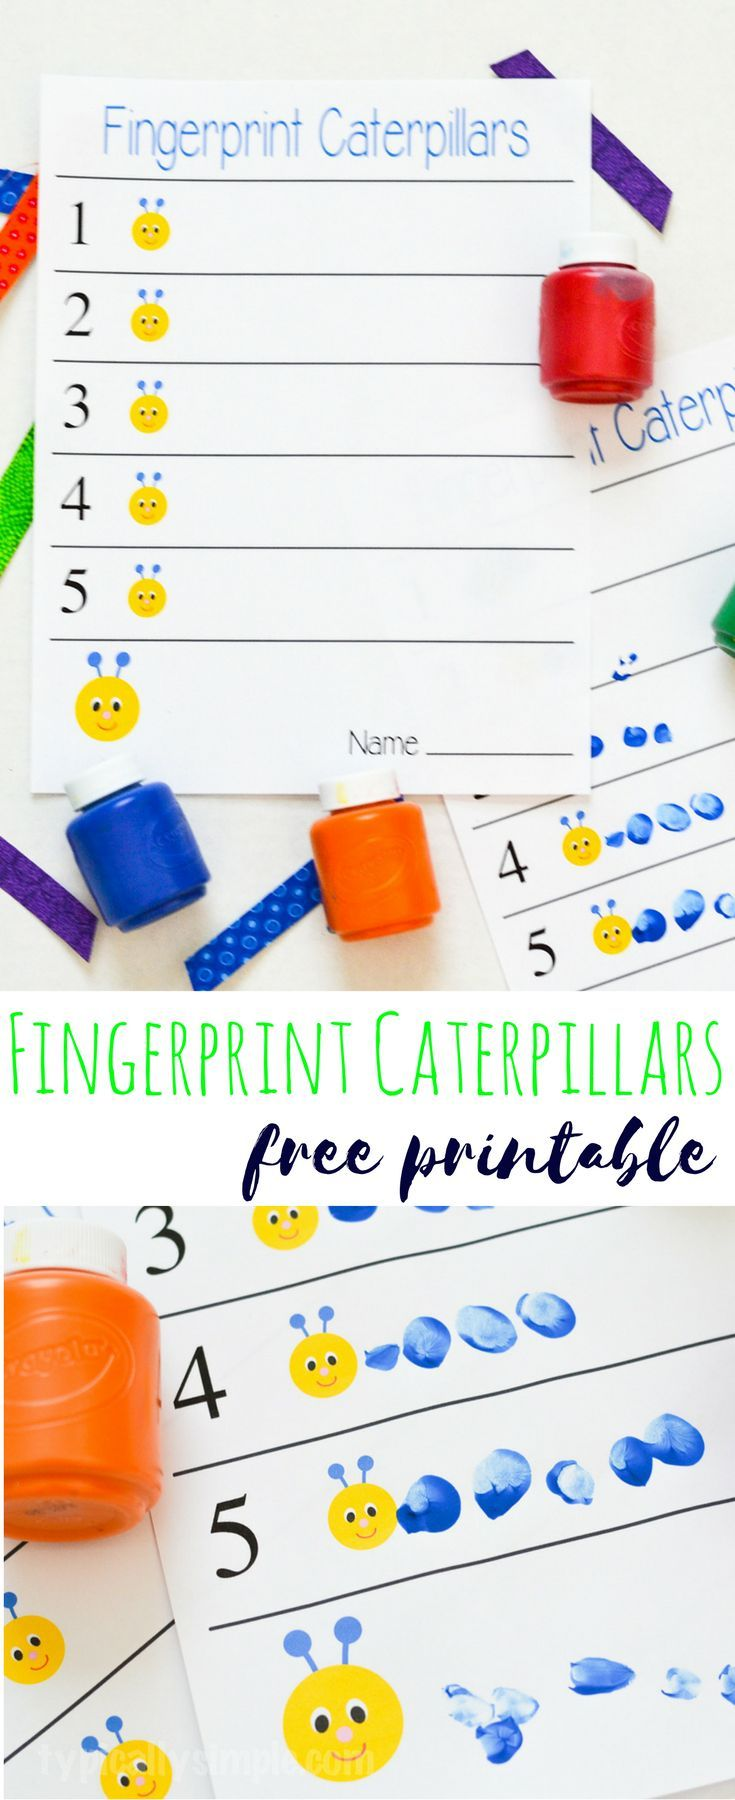 These fingerprint caterpillars are a fun way to work on number awareness! A simple craft project that is perfect for preschool aged kids. Plus you only need the free printable and some paint.